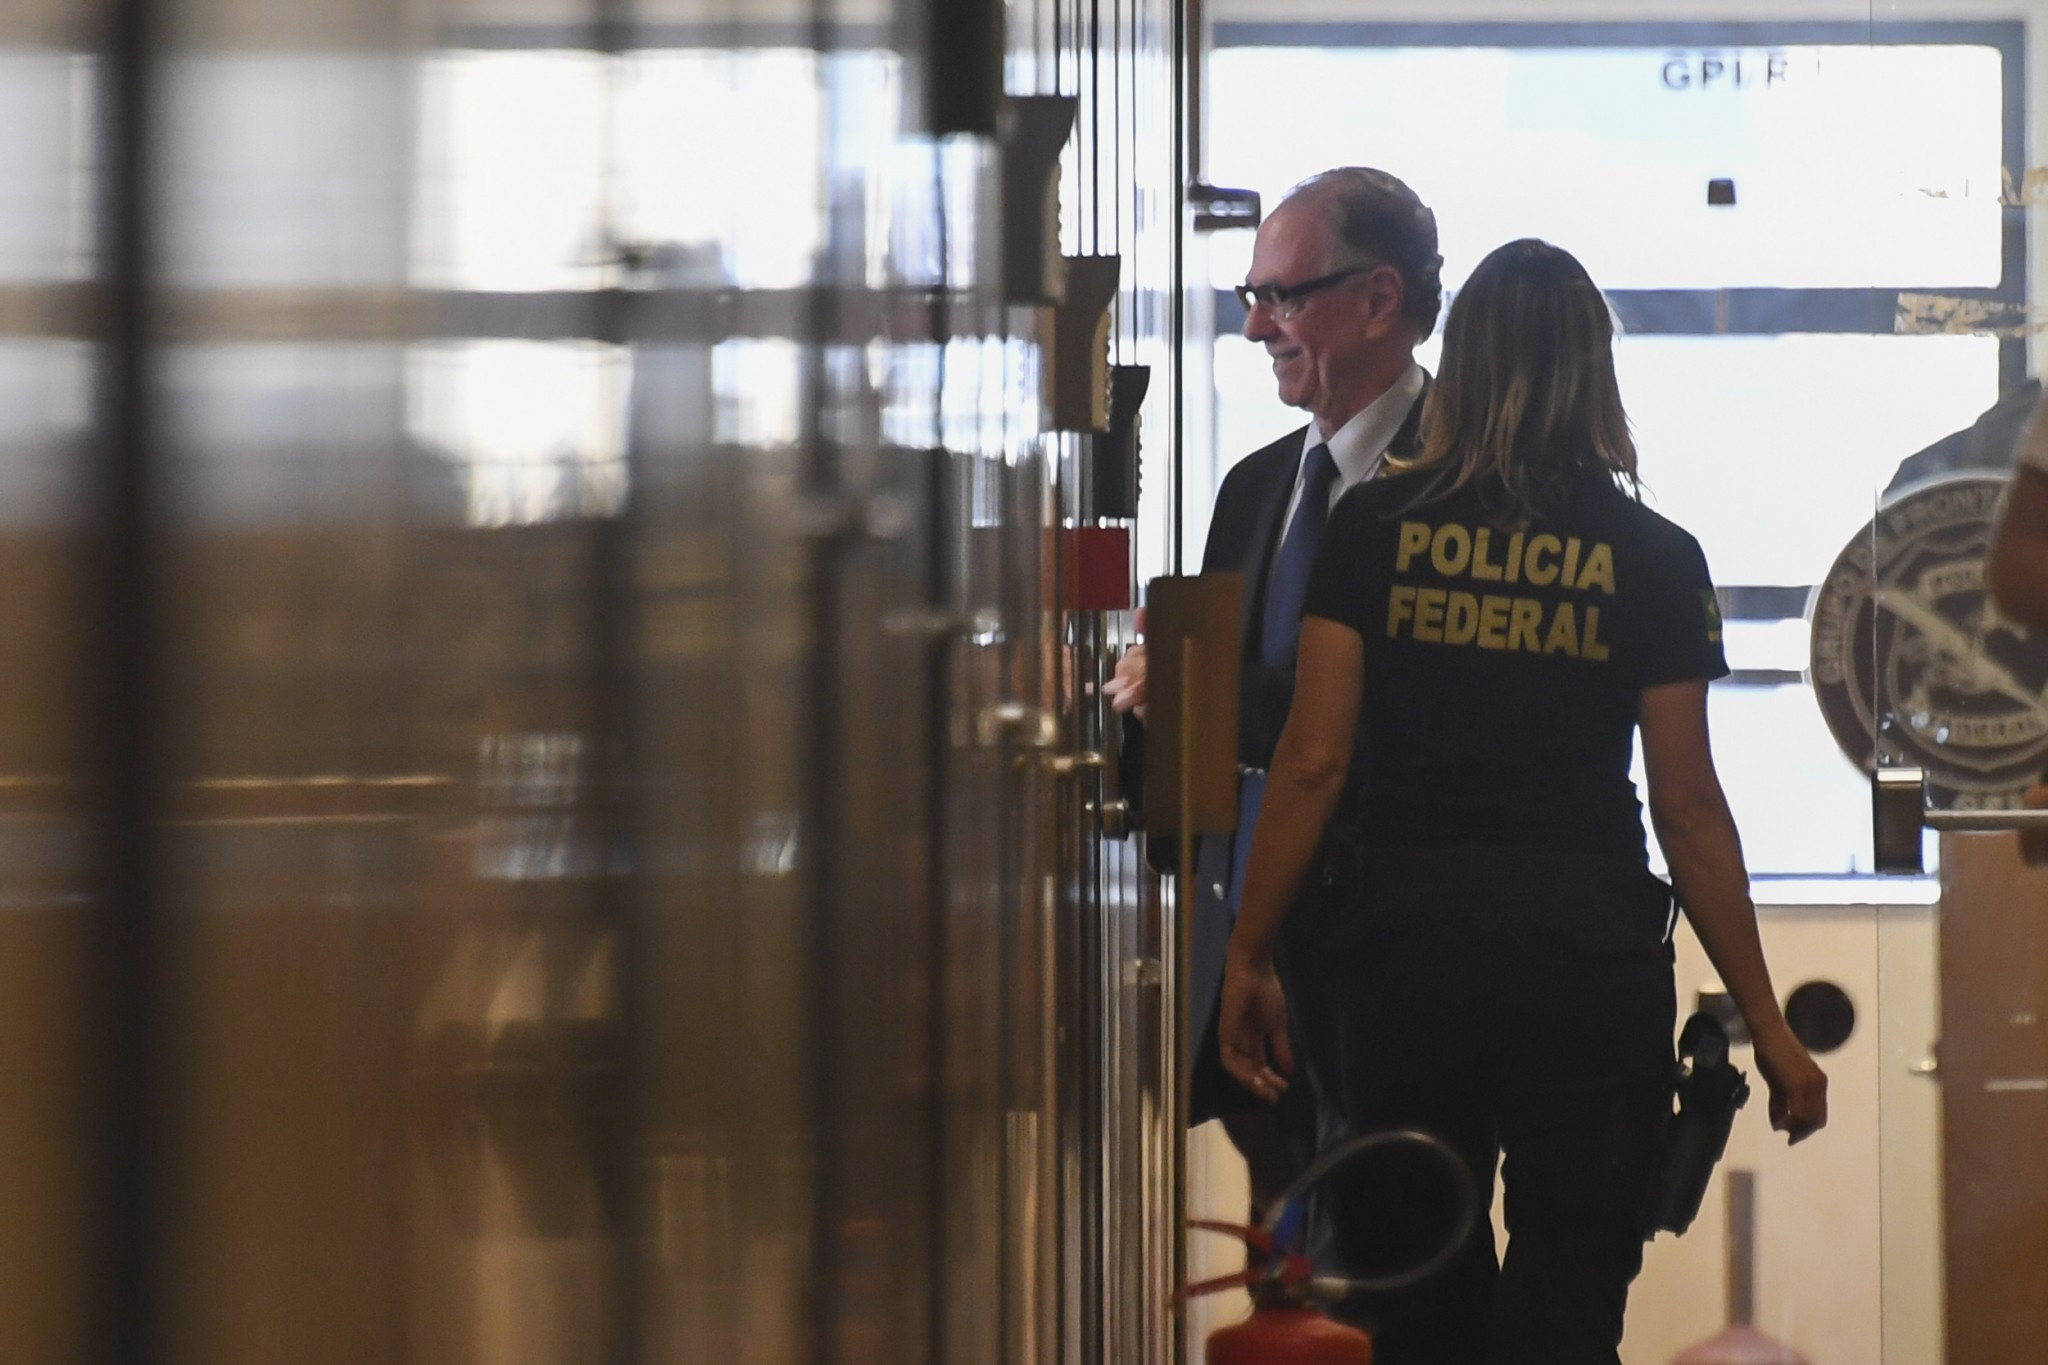 Rio 2016 and Brazilian Olympic Committee President Carlos Nuzman spent several hours in a police station after his house was searched ©Getty Images